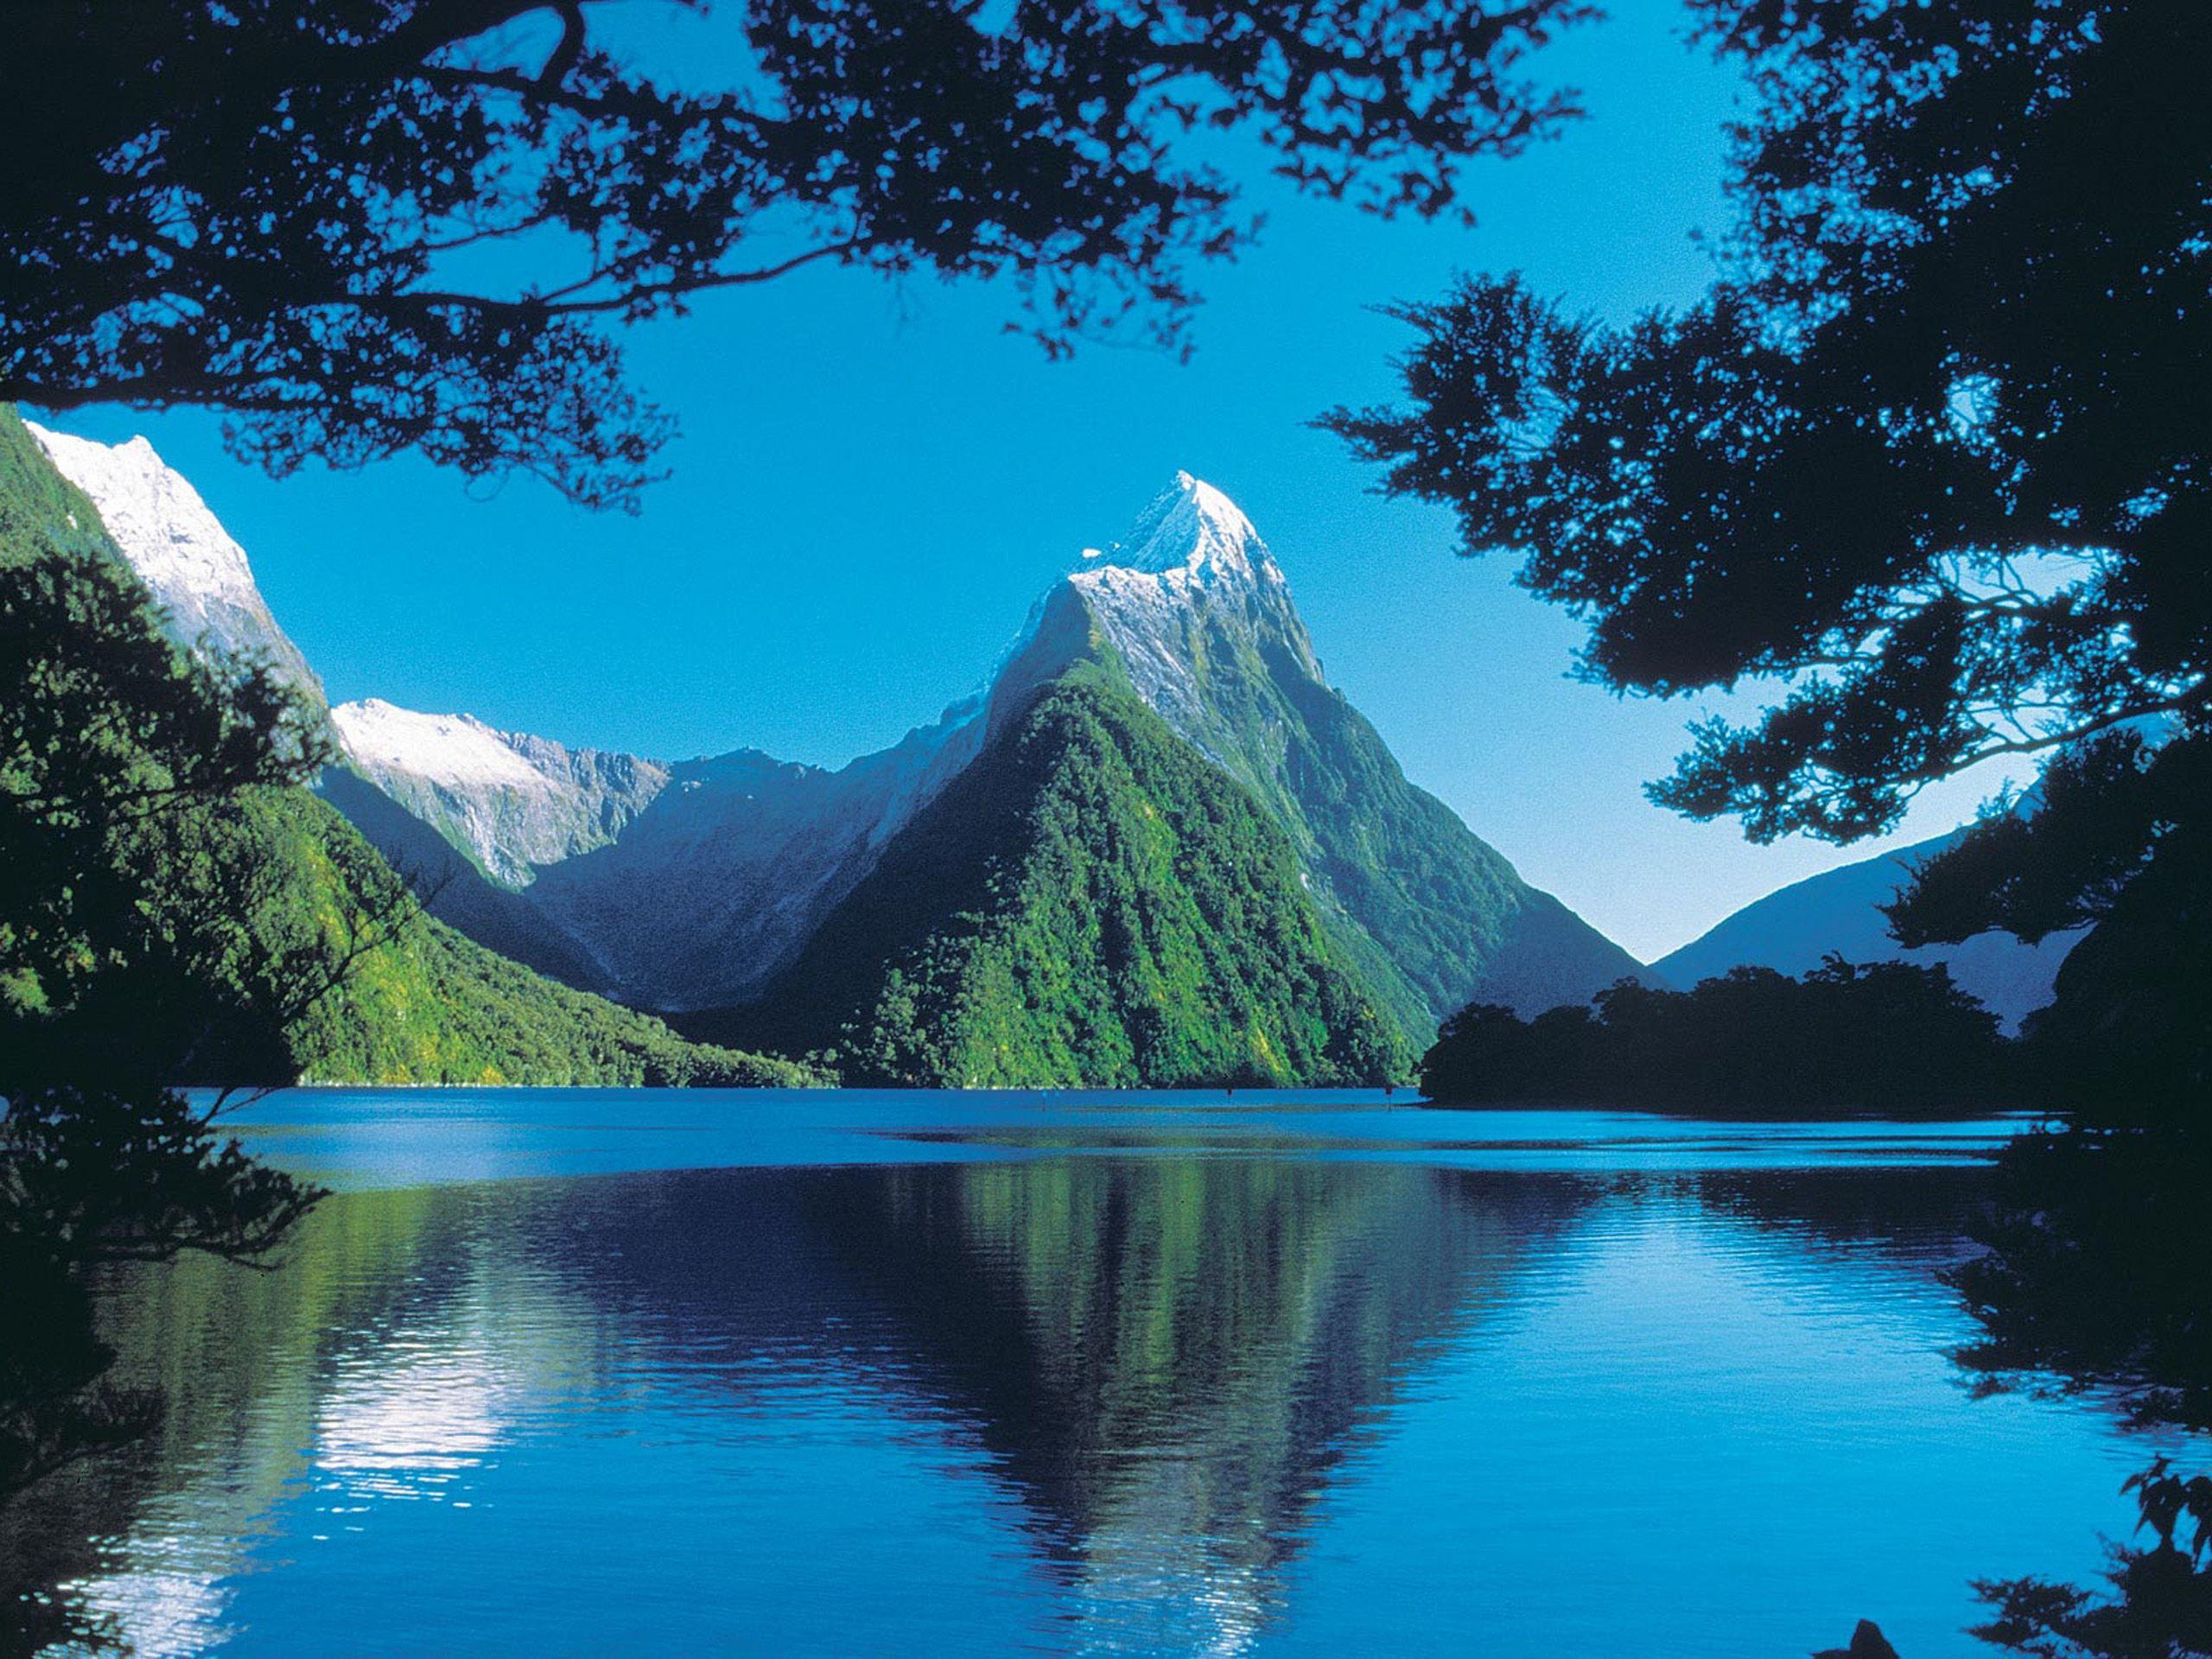 Milford-Sound-Fiordland-National-Park-New-Zealand